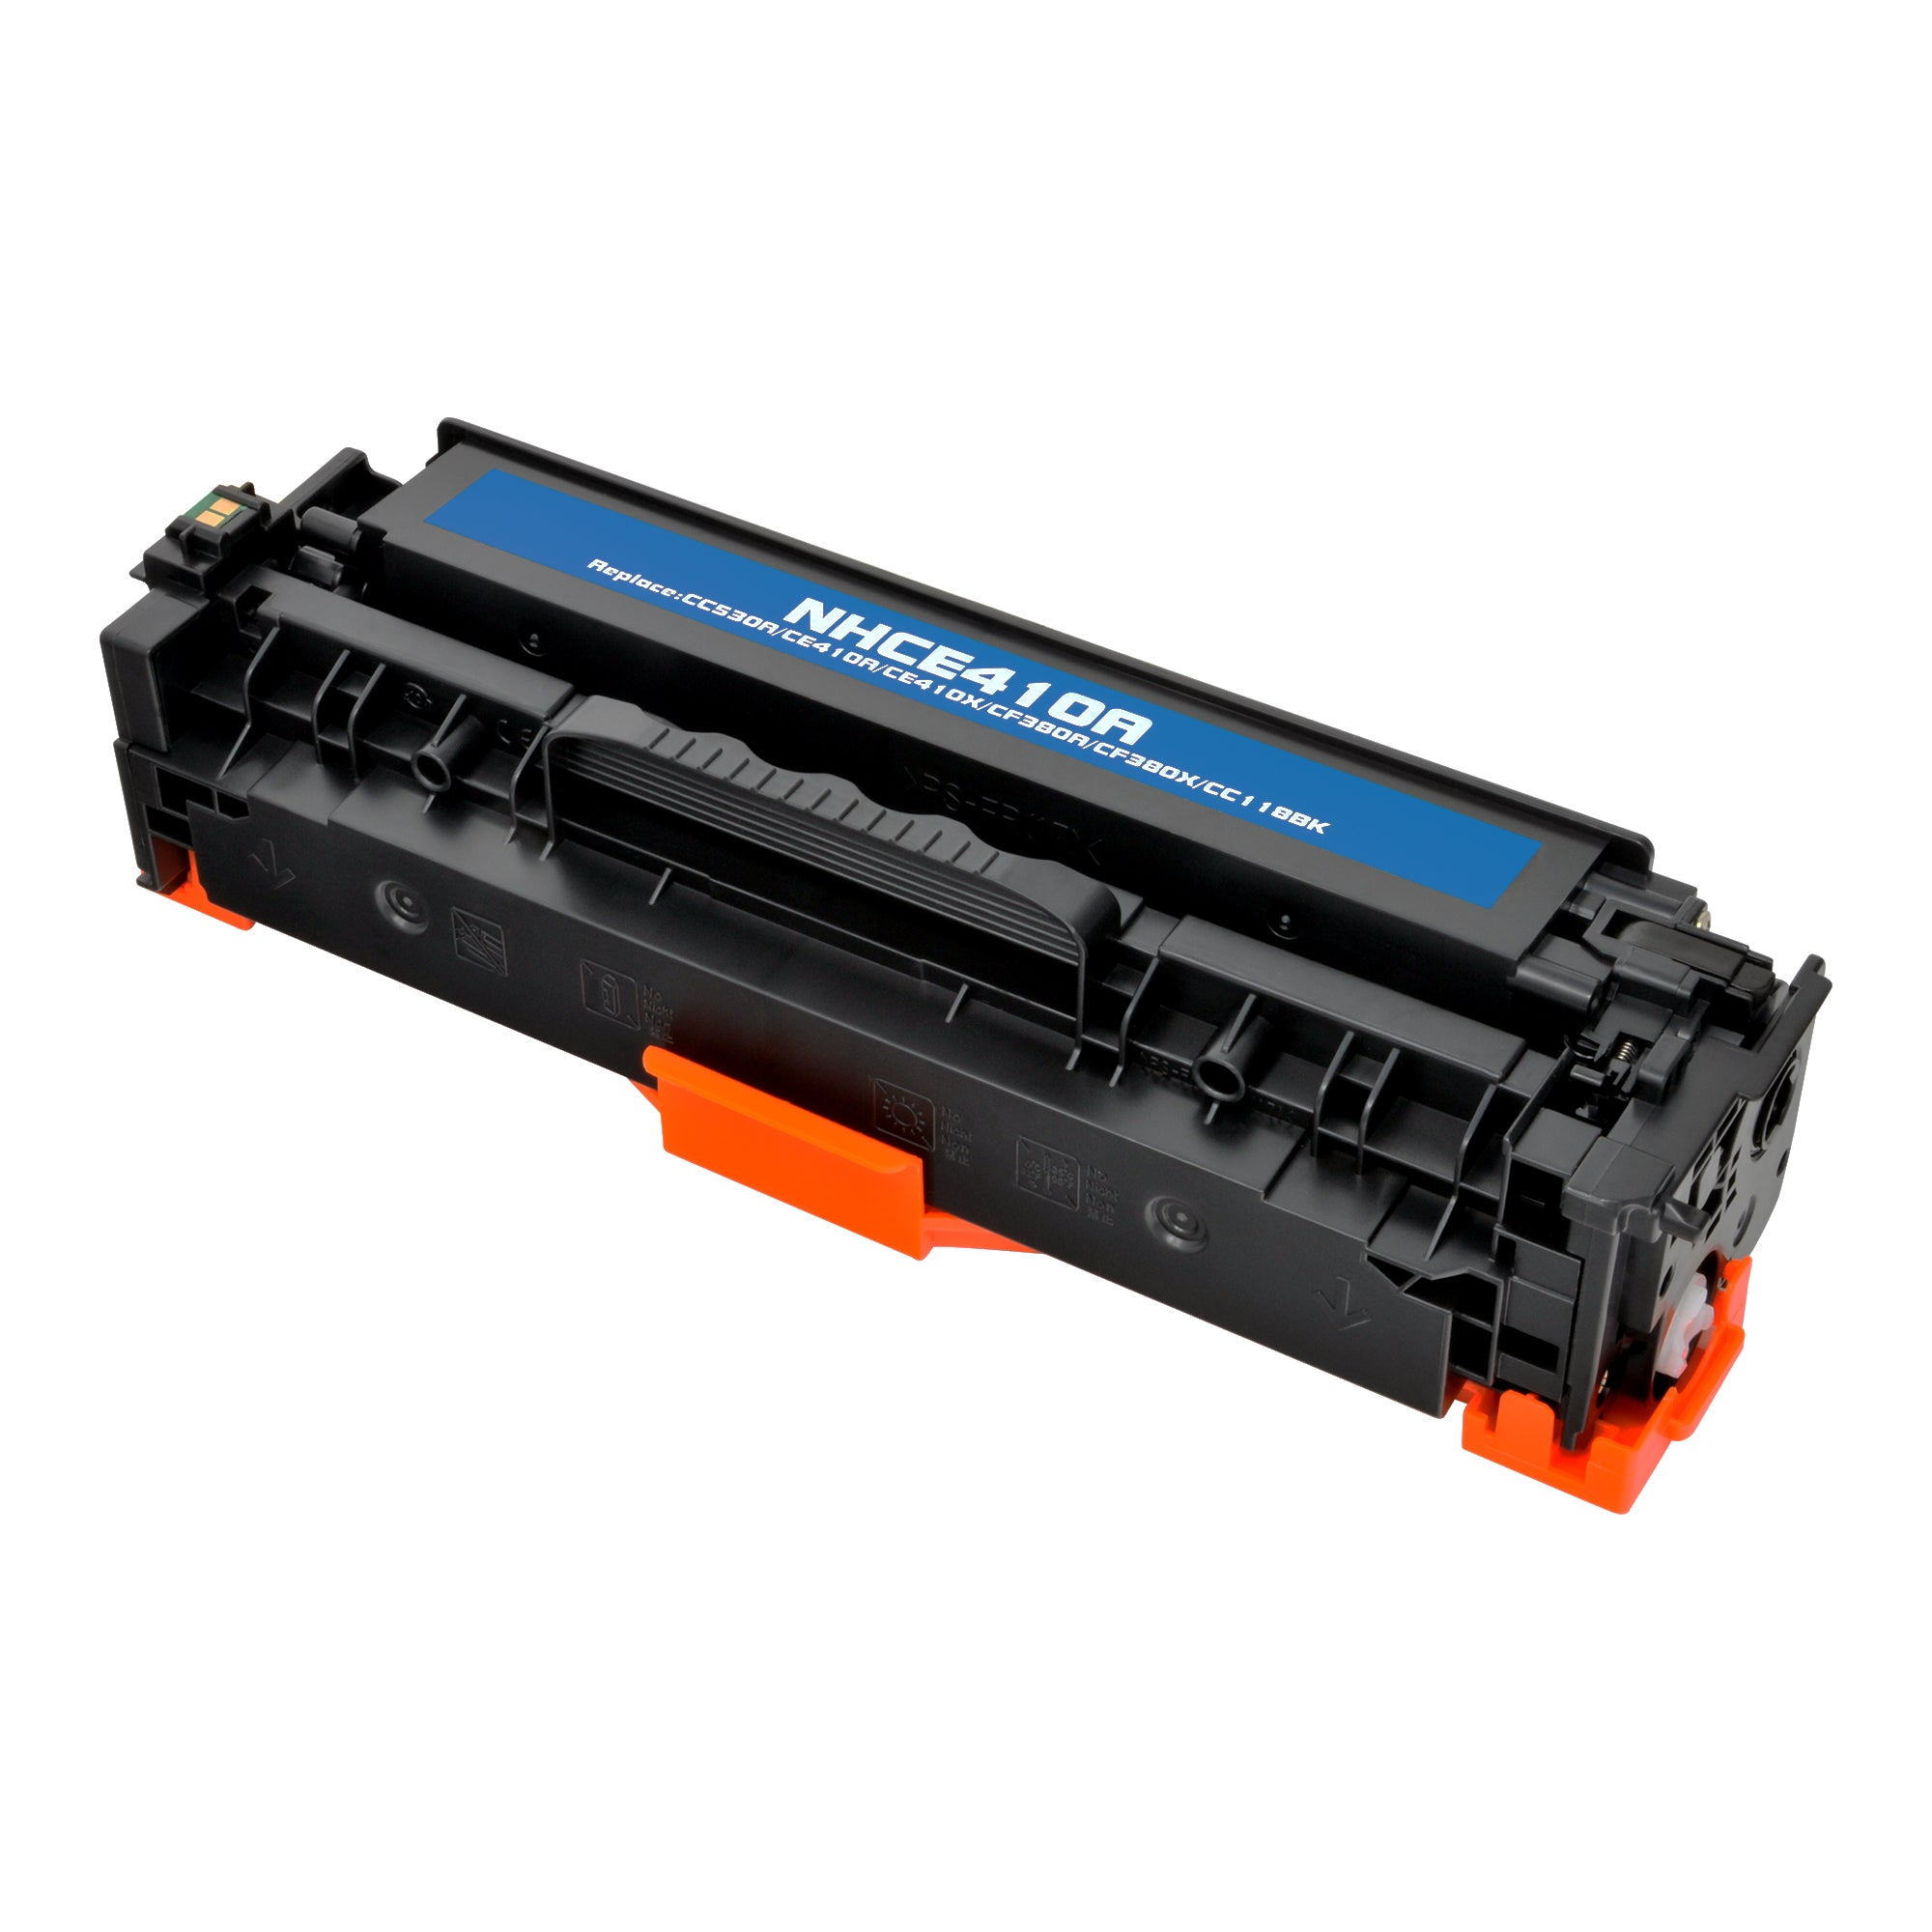 Arthur Imaging Compatible Toner Cartridge Replacement for HP CE411A Cyan (HP 305A, 1 Cyan, 1-Pack)